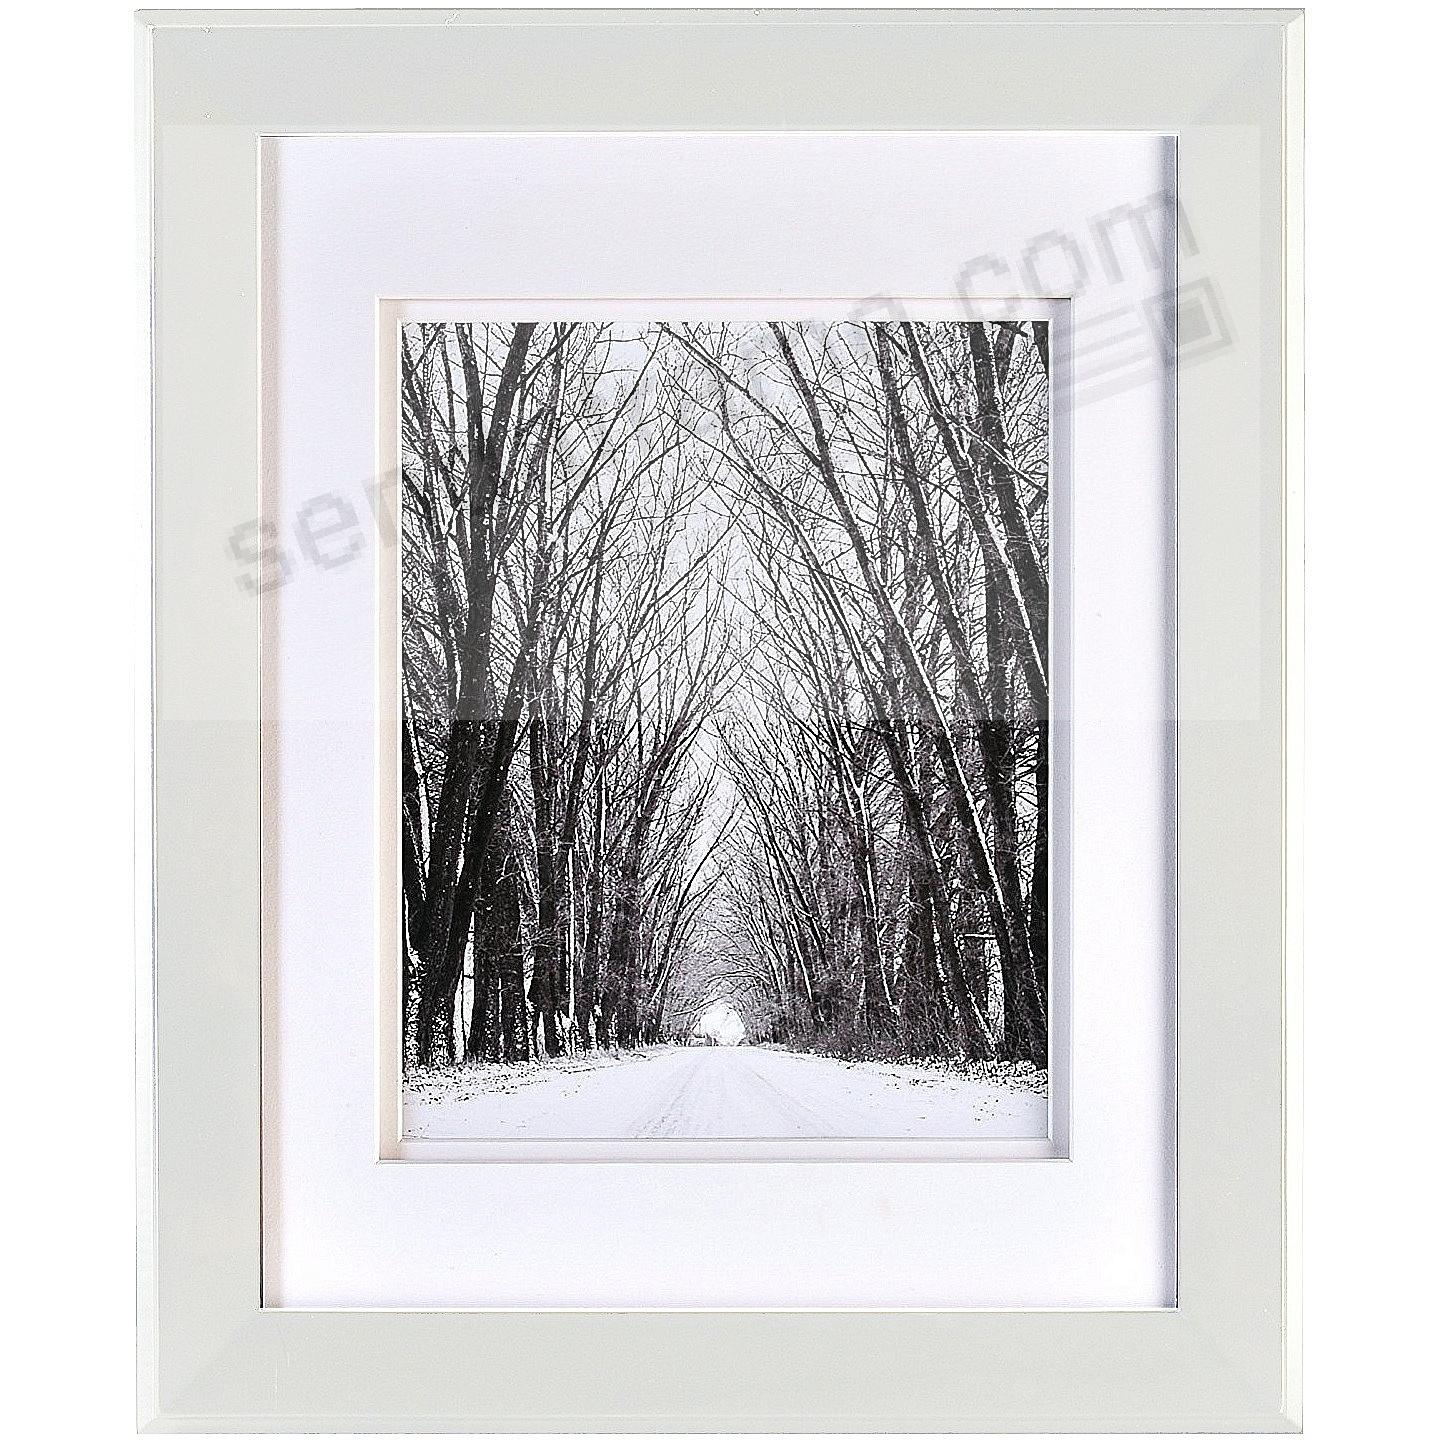 CHELSEA White Wood 16x20/11x14 DBL-Matted Frame from ARTCARE® by Nielsen®